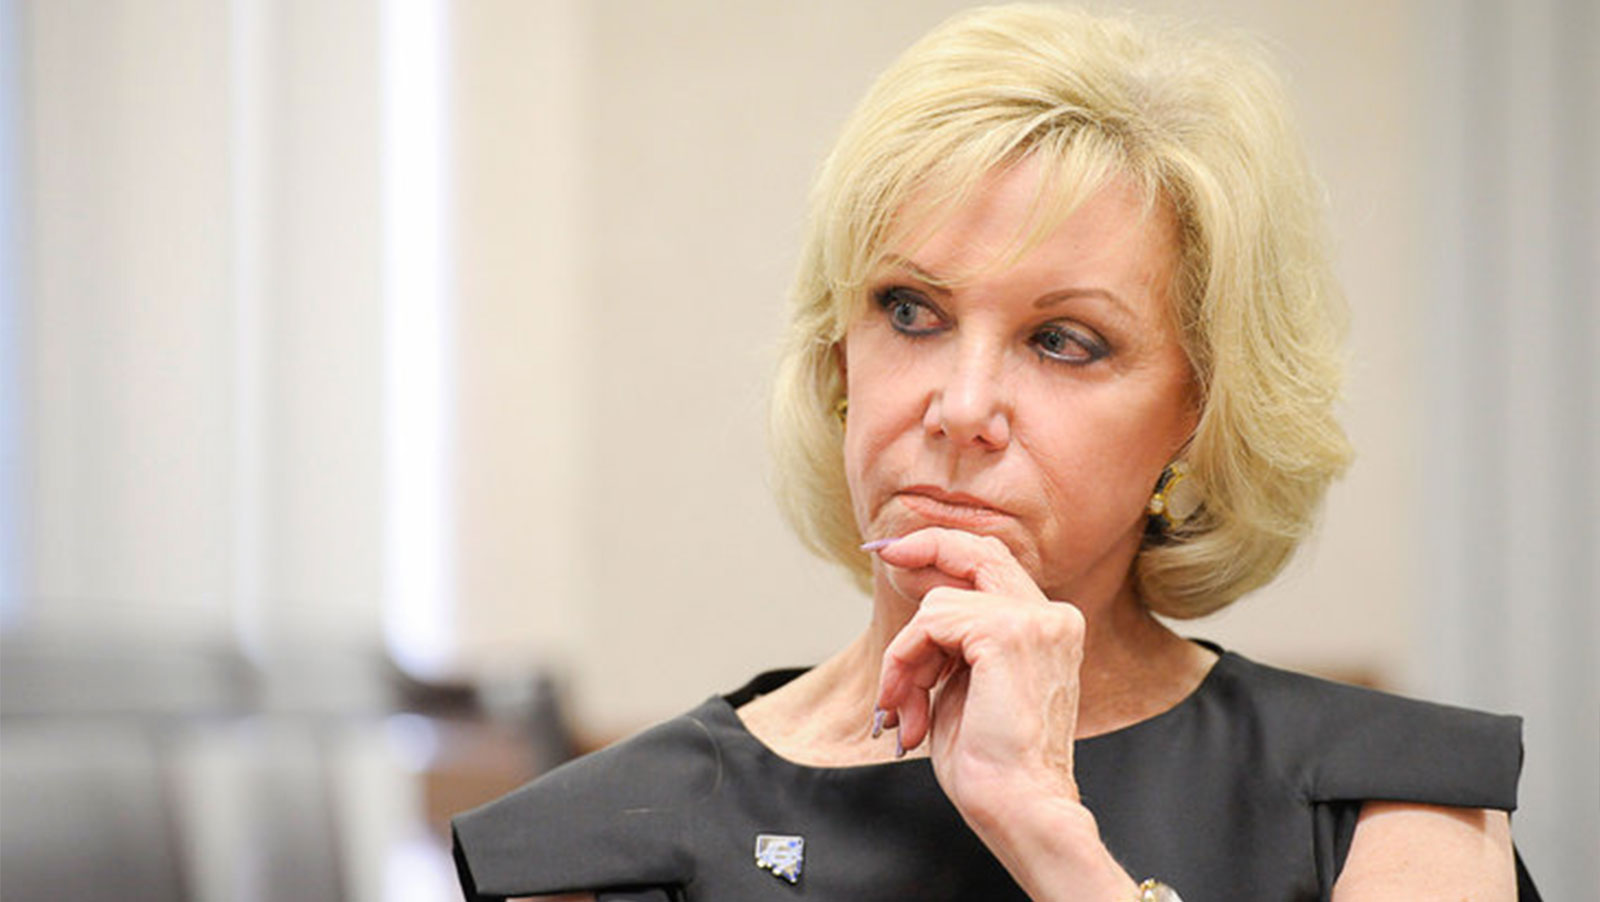 Elaine Wynn may have a point